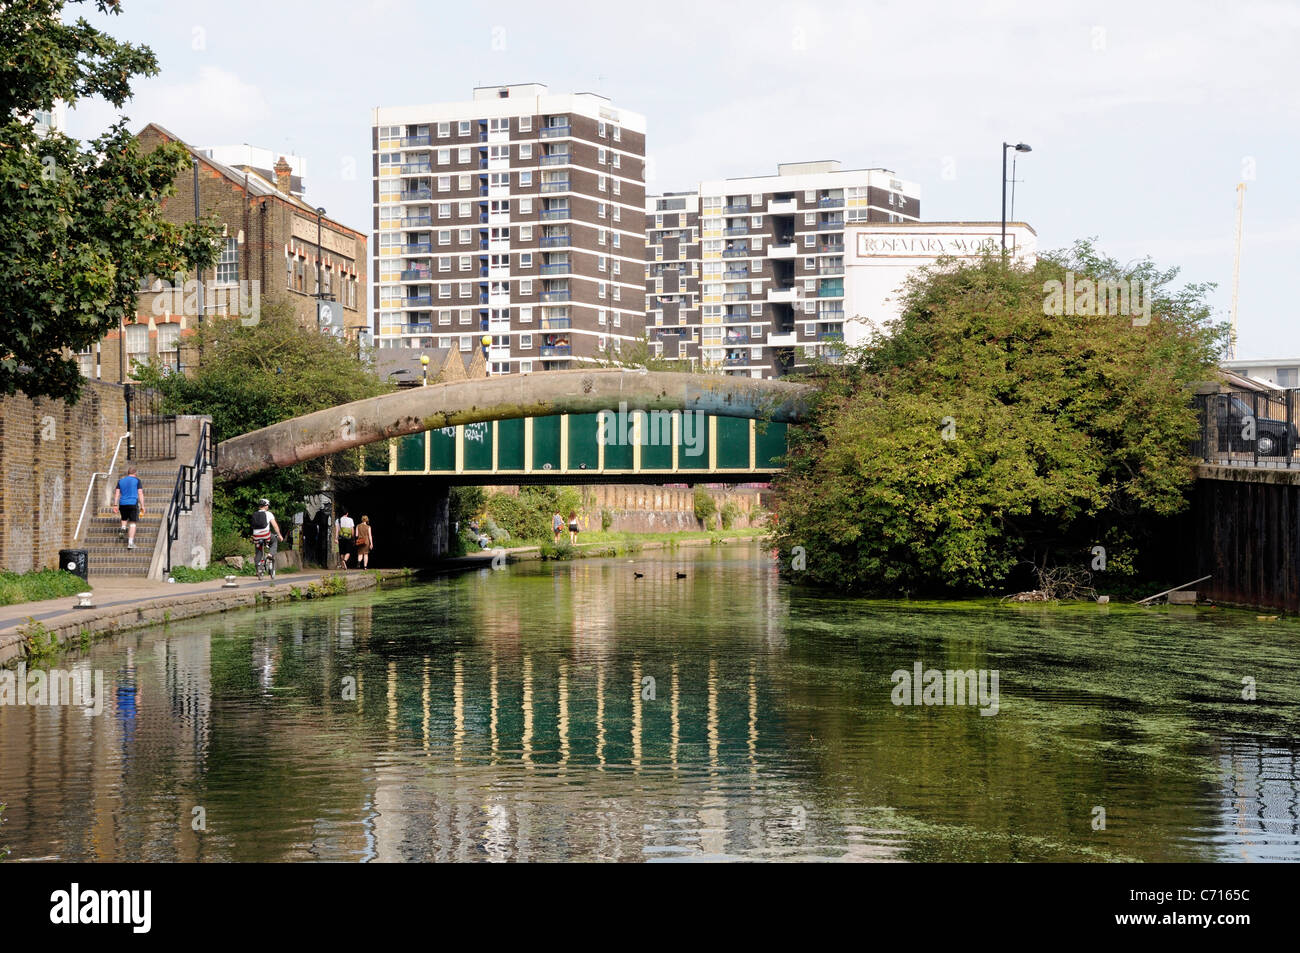 Bridge over the Regent's Canal with people on towpath and flats behind Hackney London England UK - Stock Image